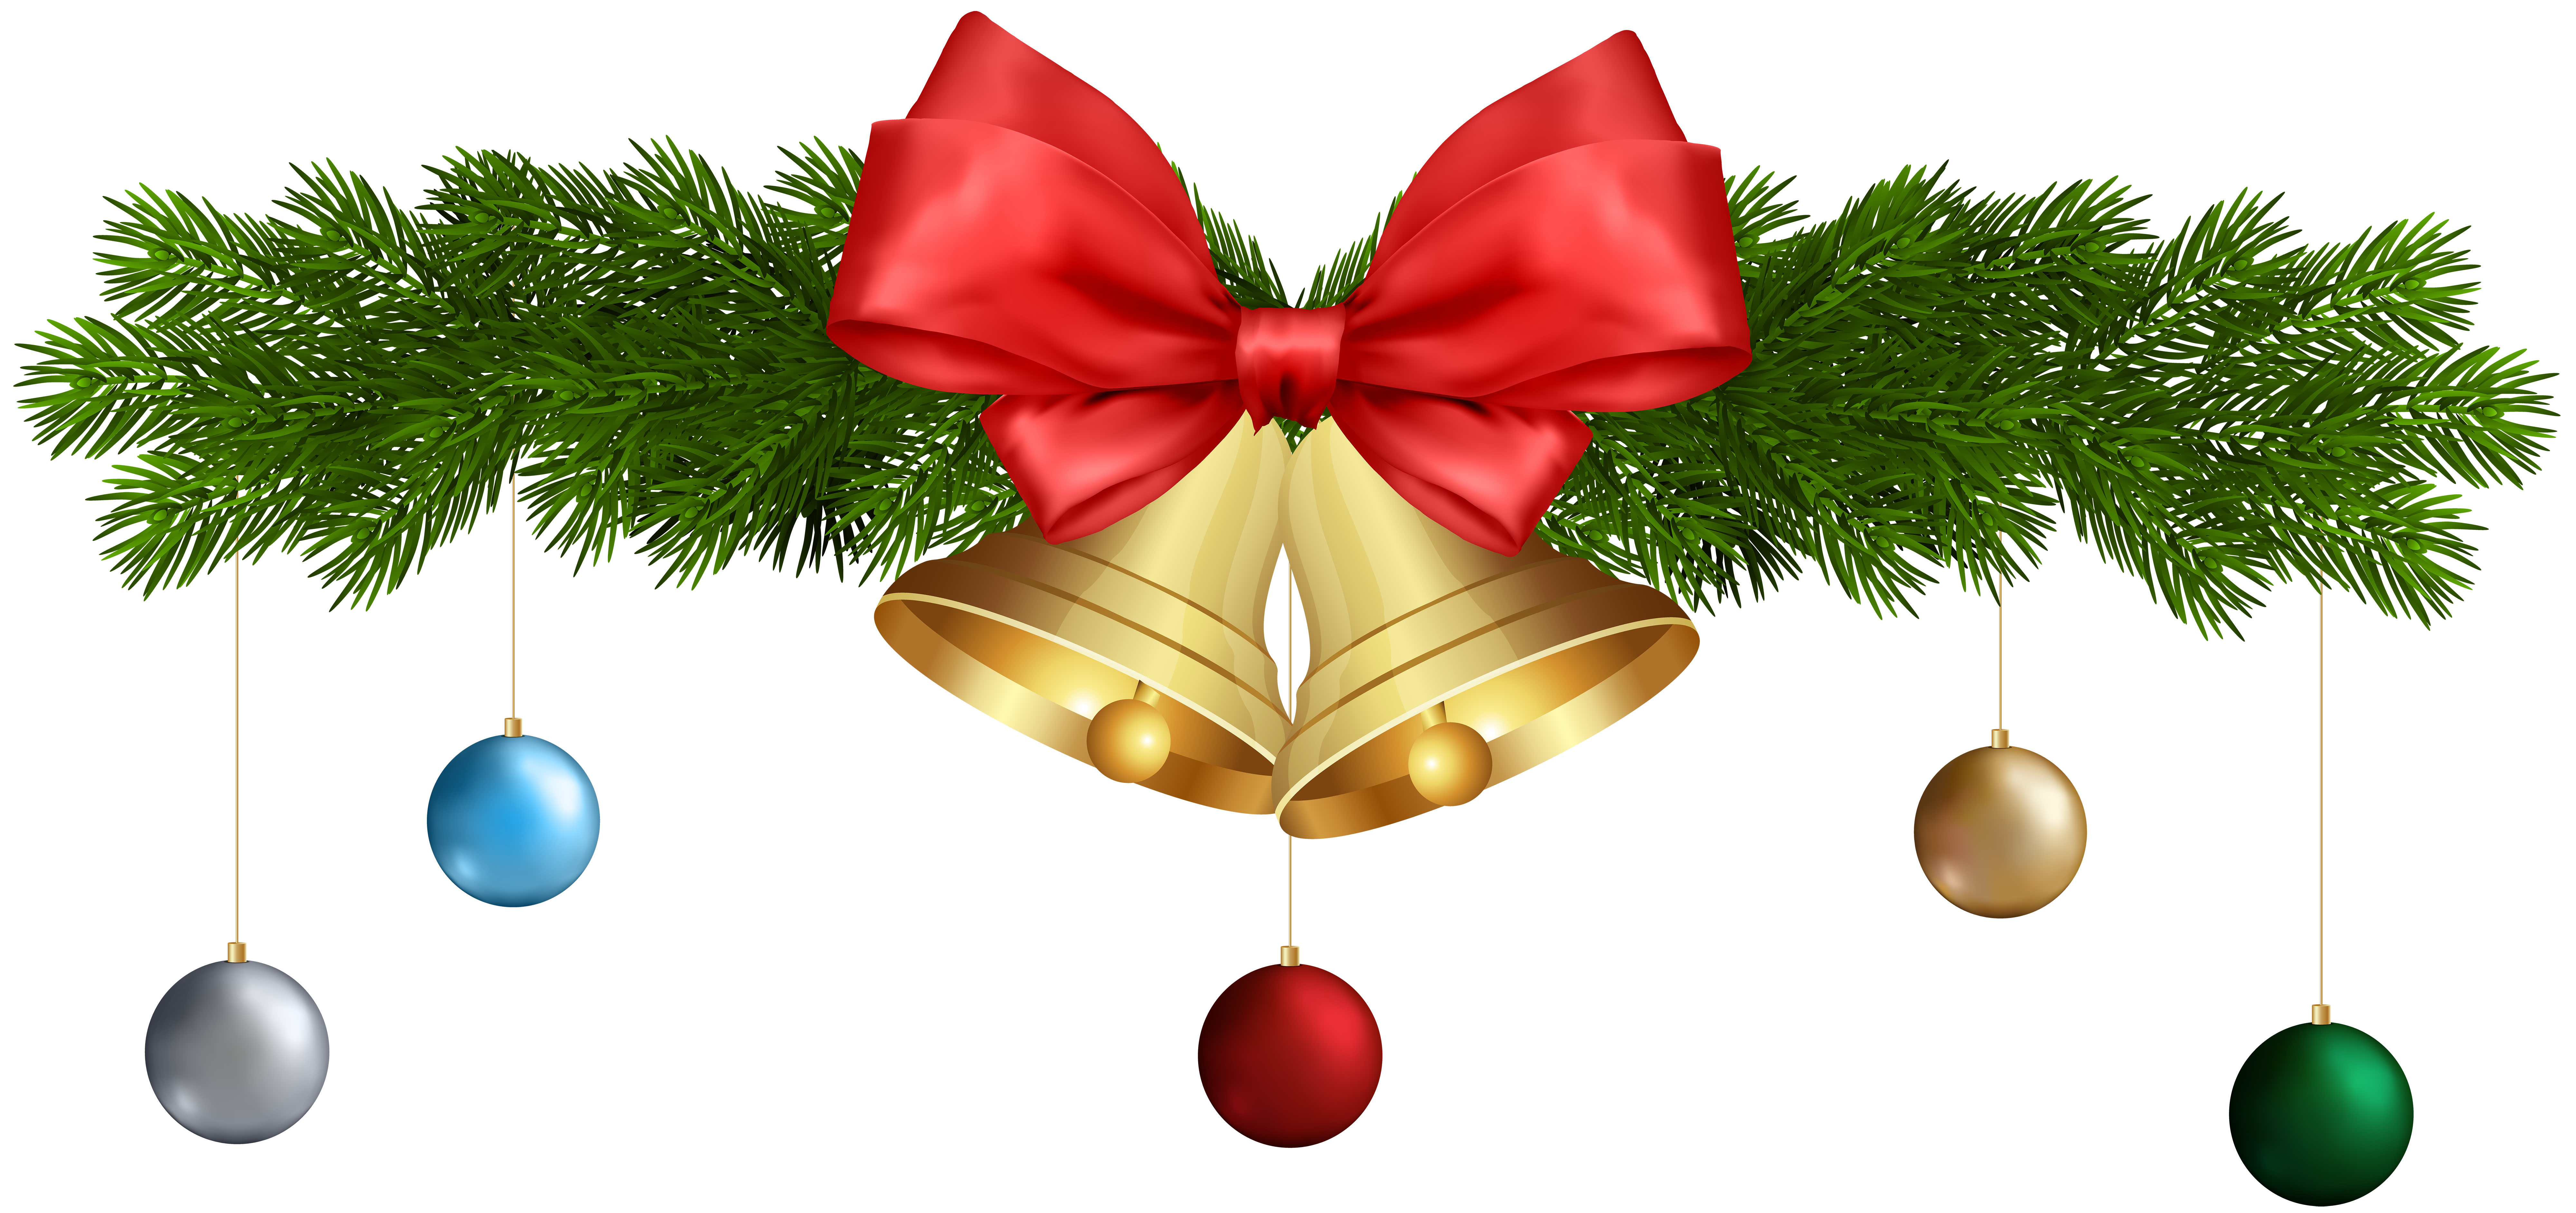 Christmas photo ornaments png. Bell clipart free christmastree